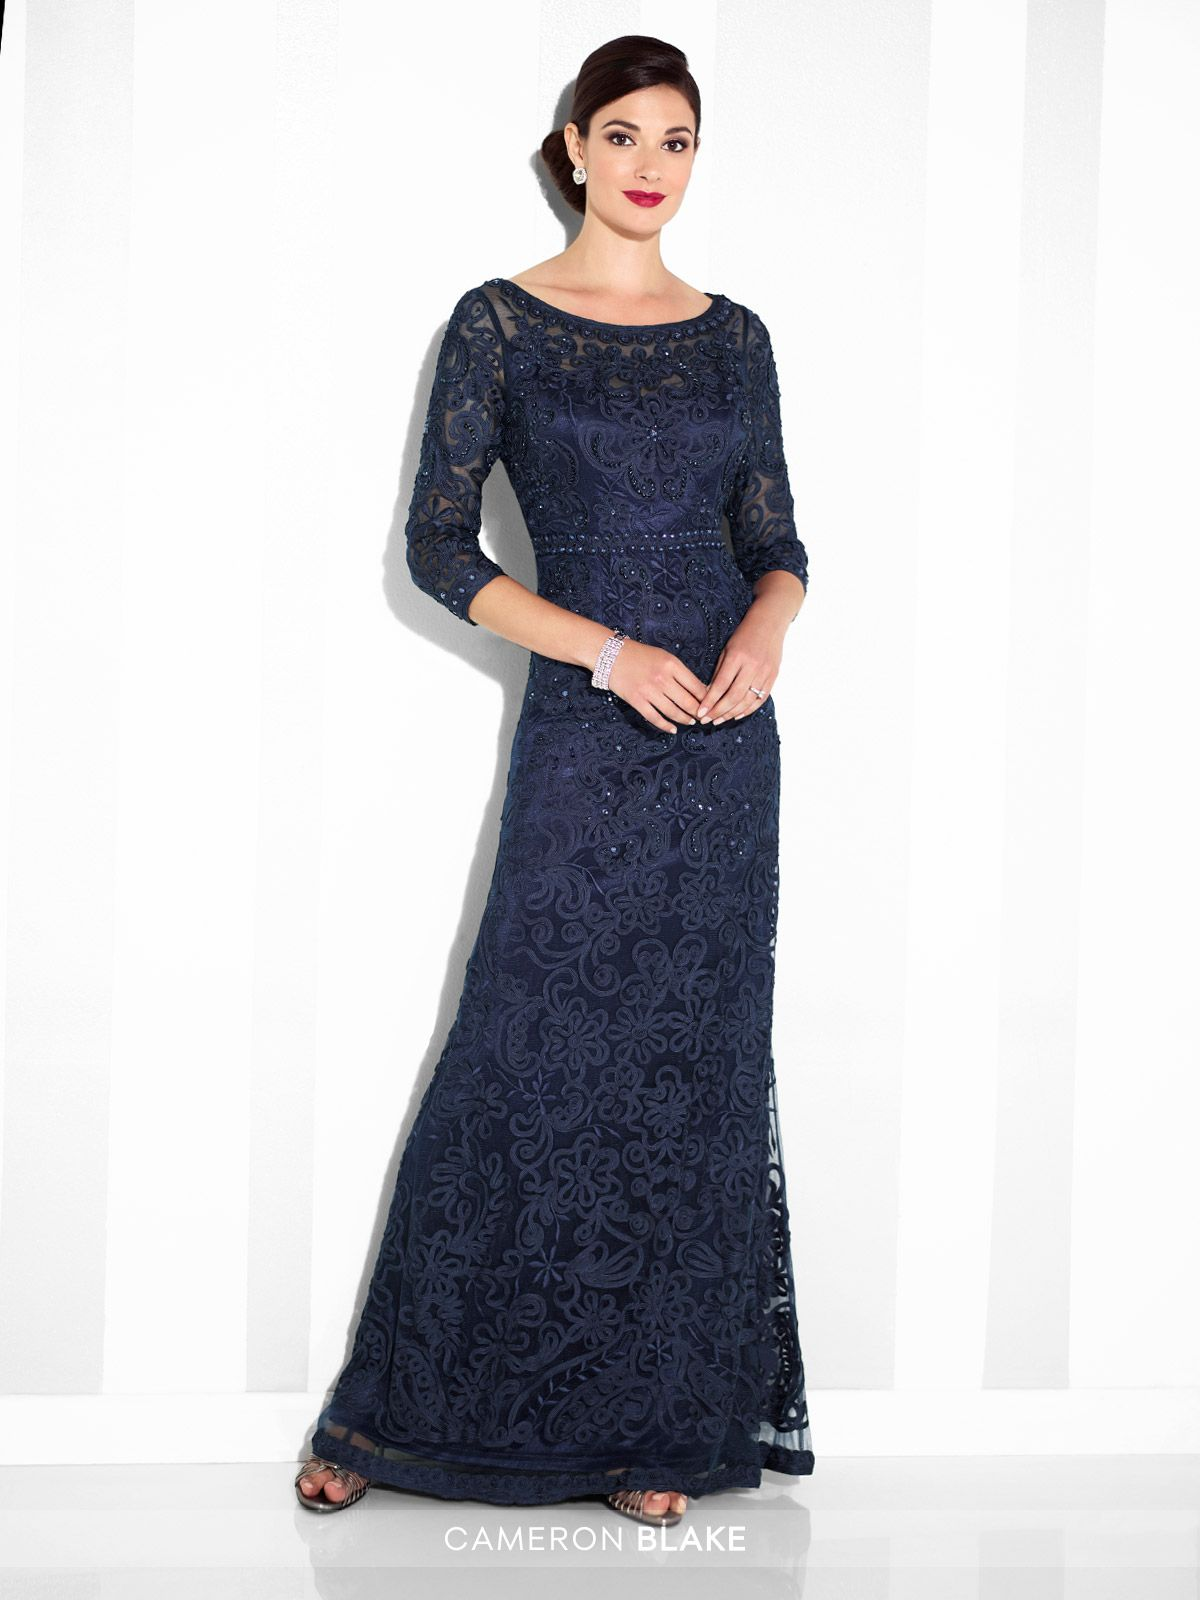 9e9ba5e3995 Cameron Blake - 115604SL - Ribbon on tulle slim A-line gown with illusion  three-quarter length sleeves